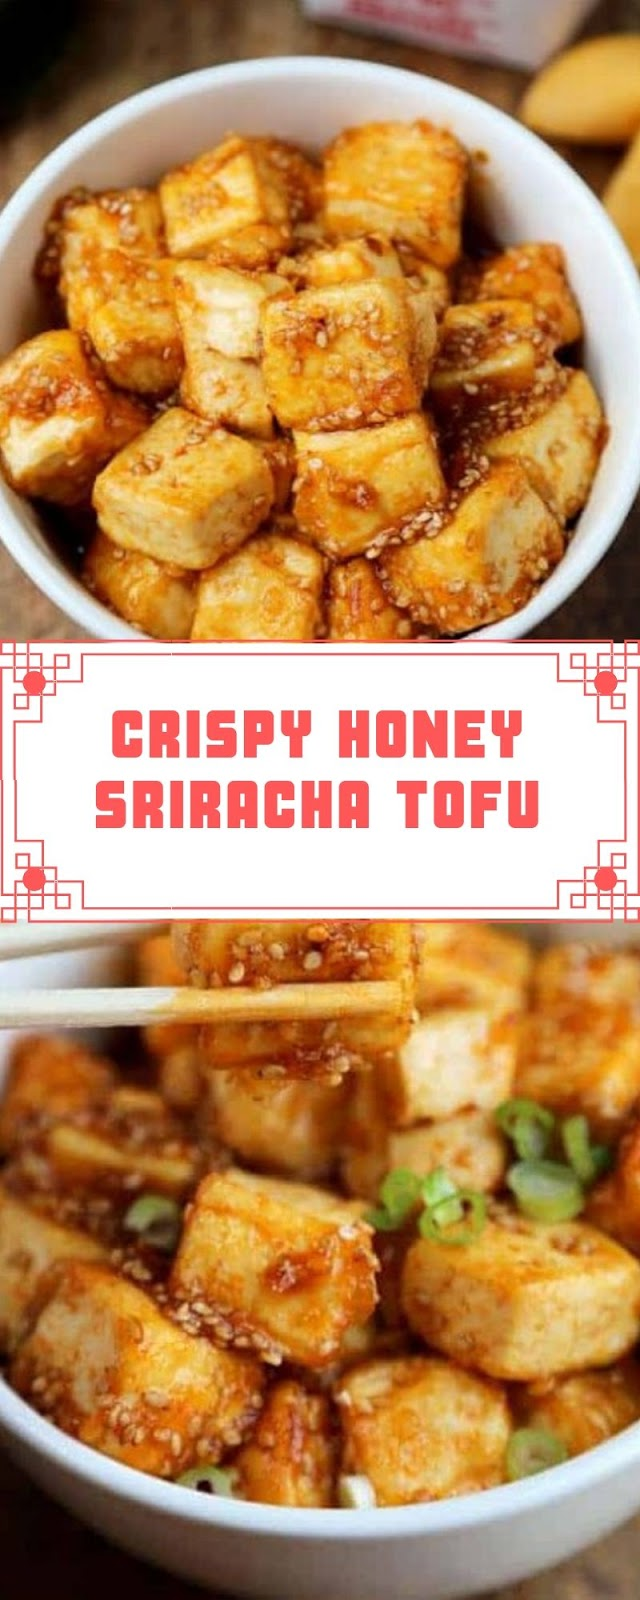 CRISPY HONEY SRIRACHA TOFU